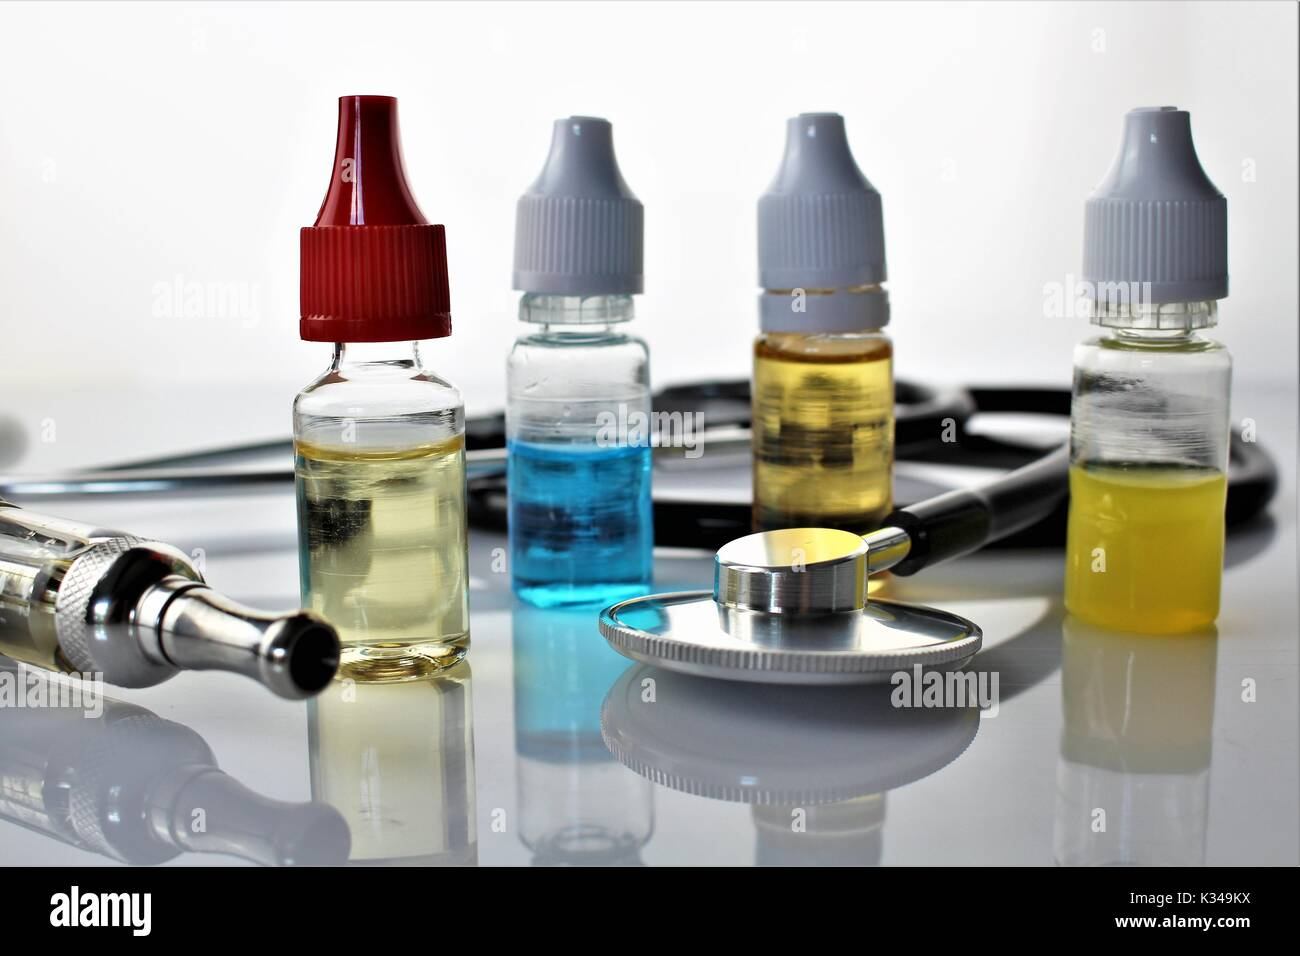 An image of a e-cigarette and a stethoscope - concept - Stock Image